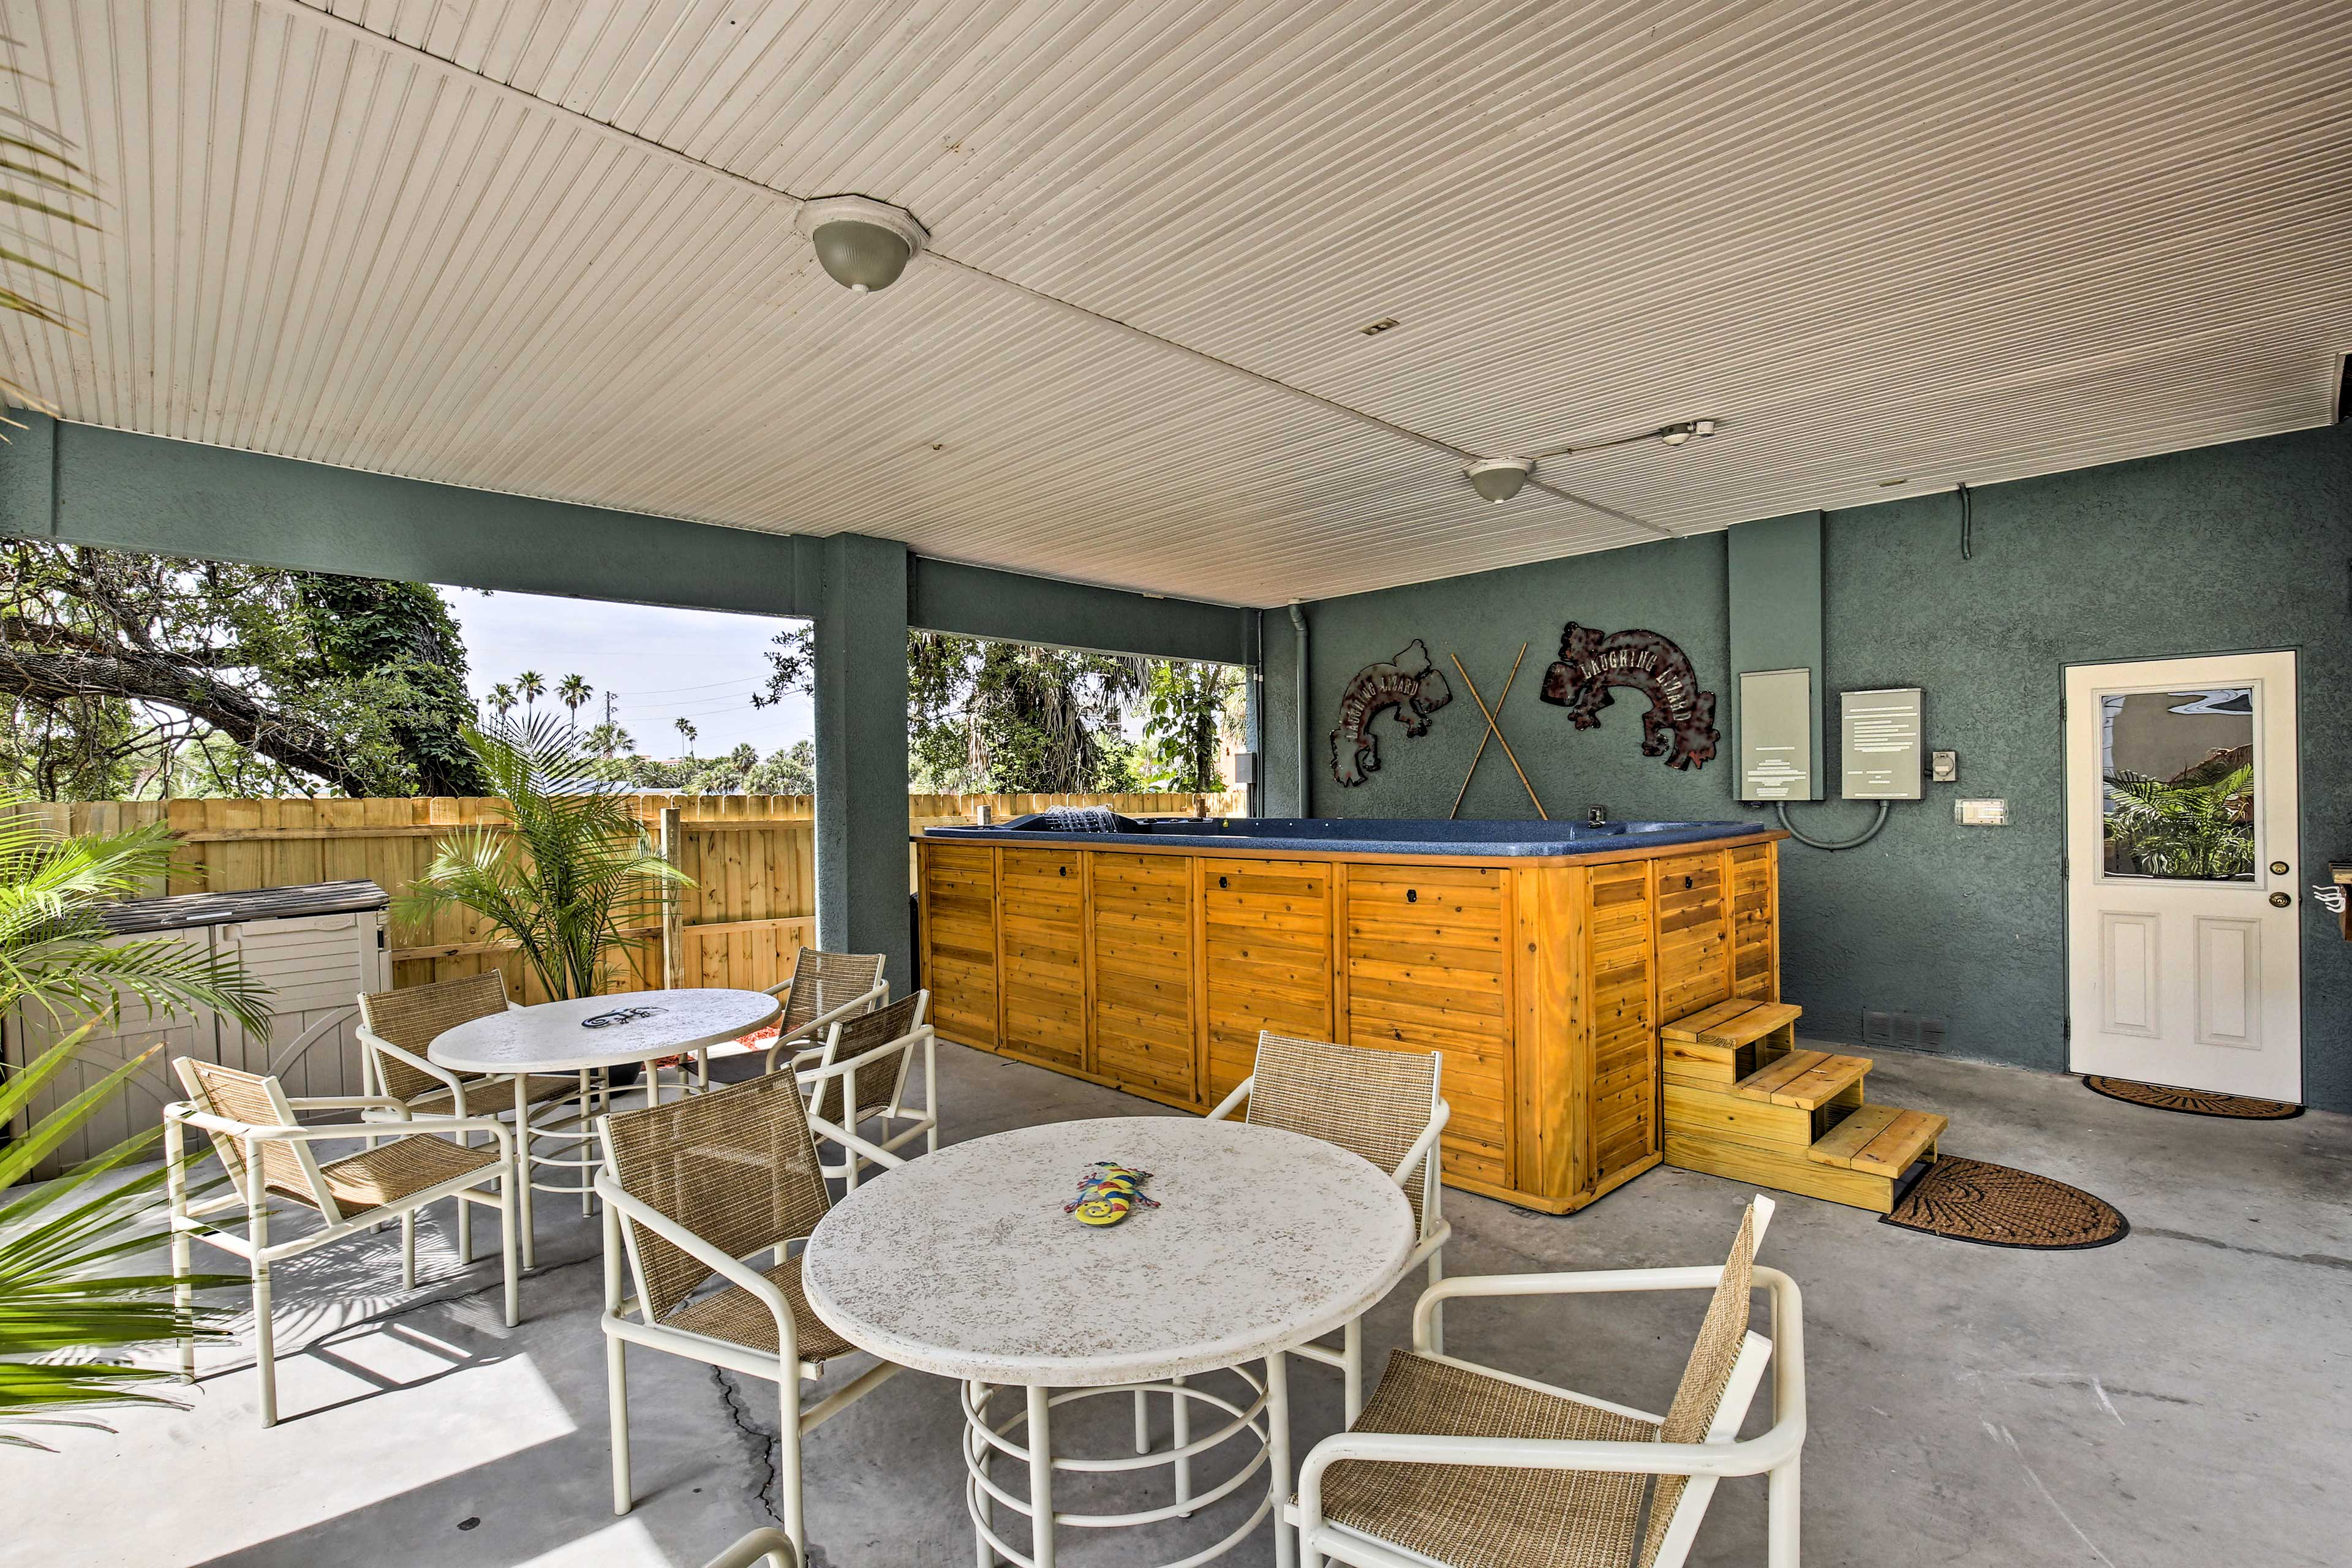 Enjoy a meal alfresco on the furnished patio.